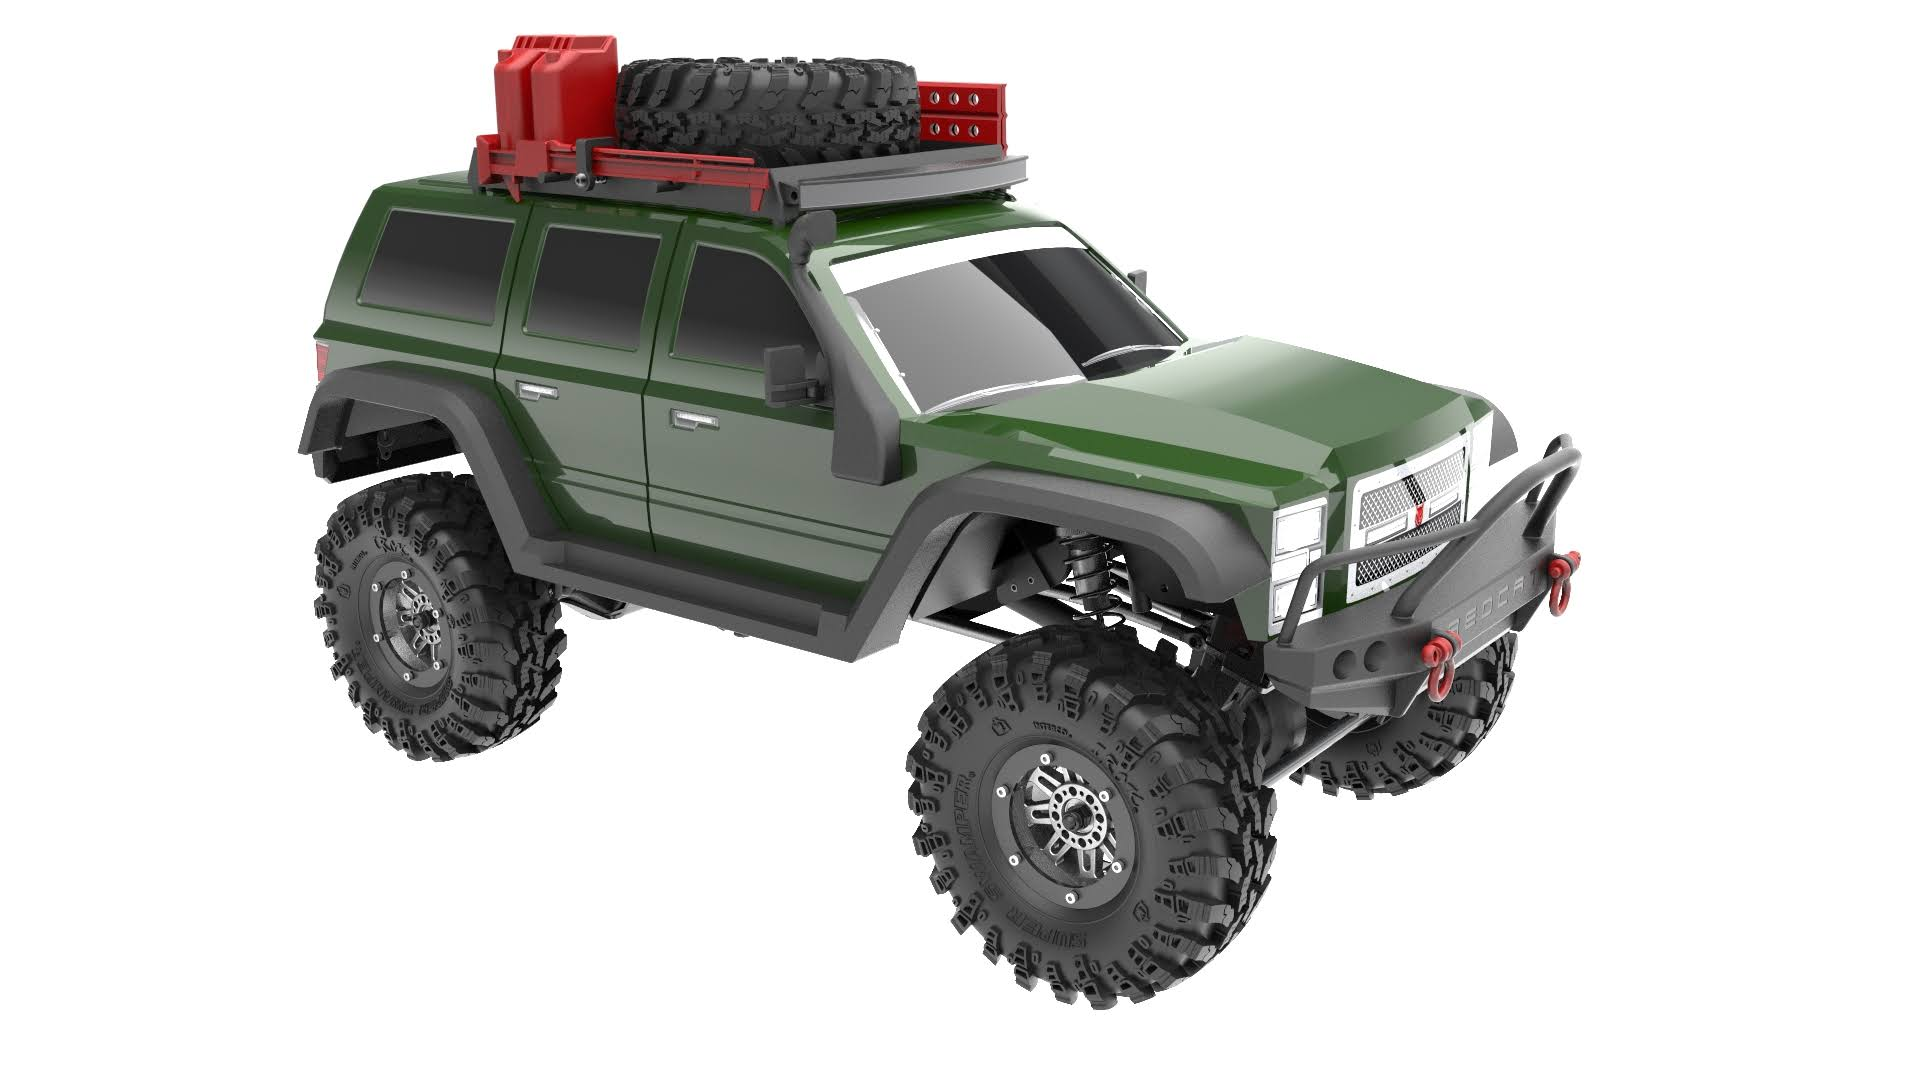 Redcat Racing 9588 Everest Gen7 Pro RC Vehicle Crawler Truck - Green